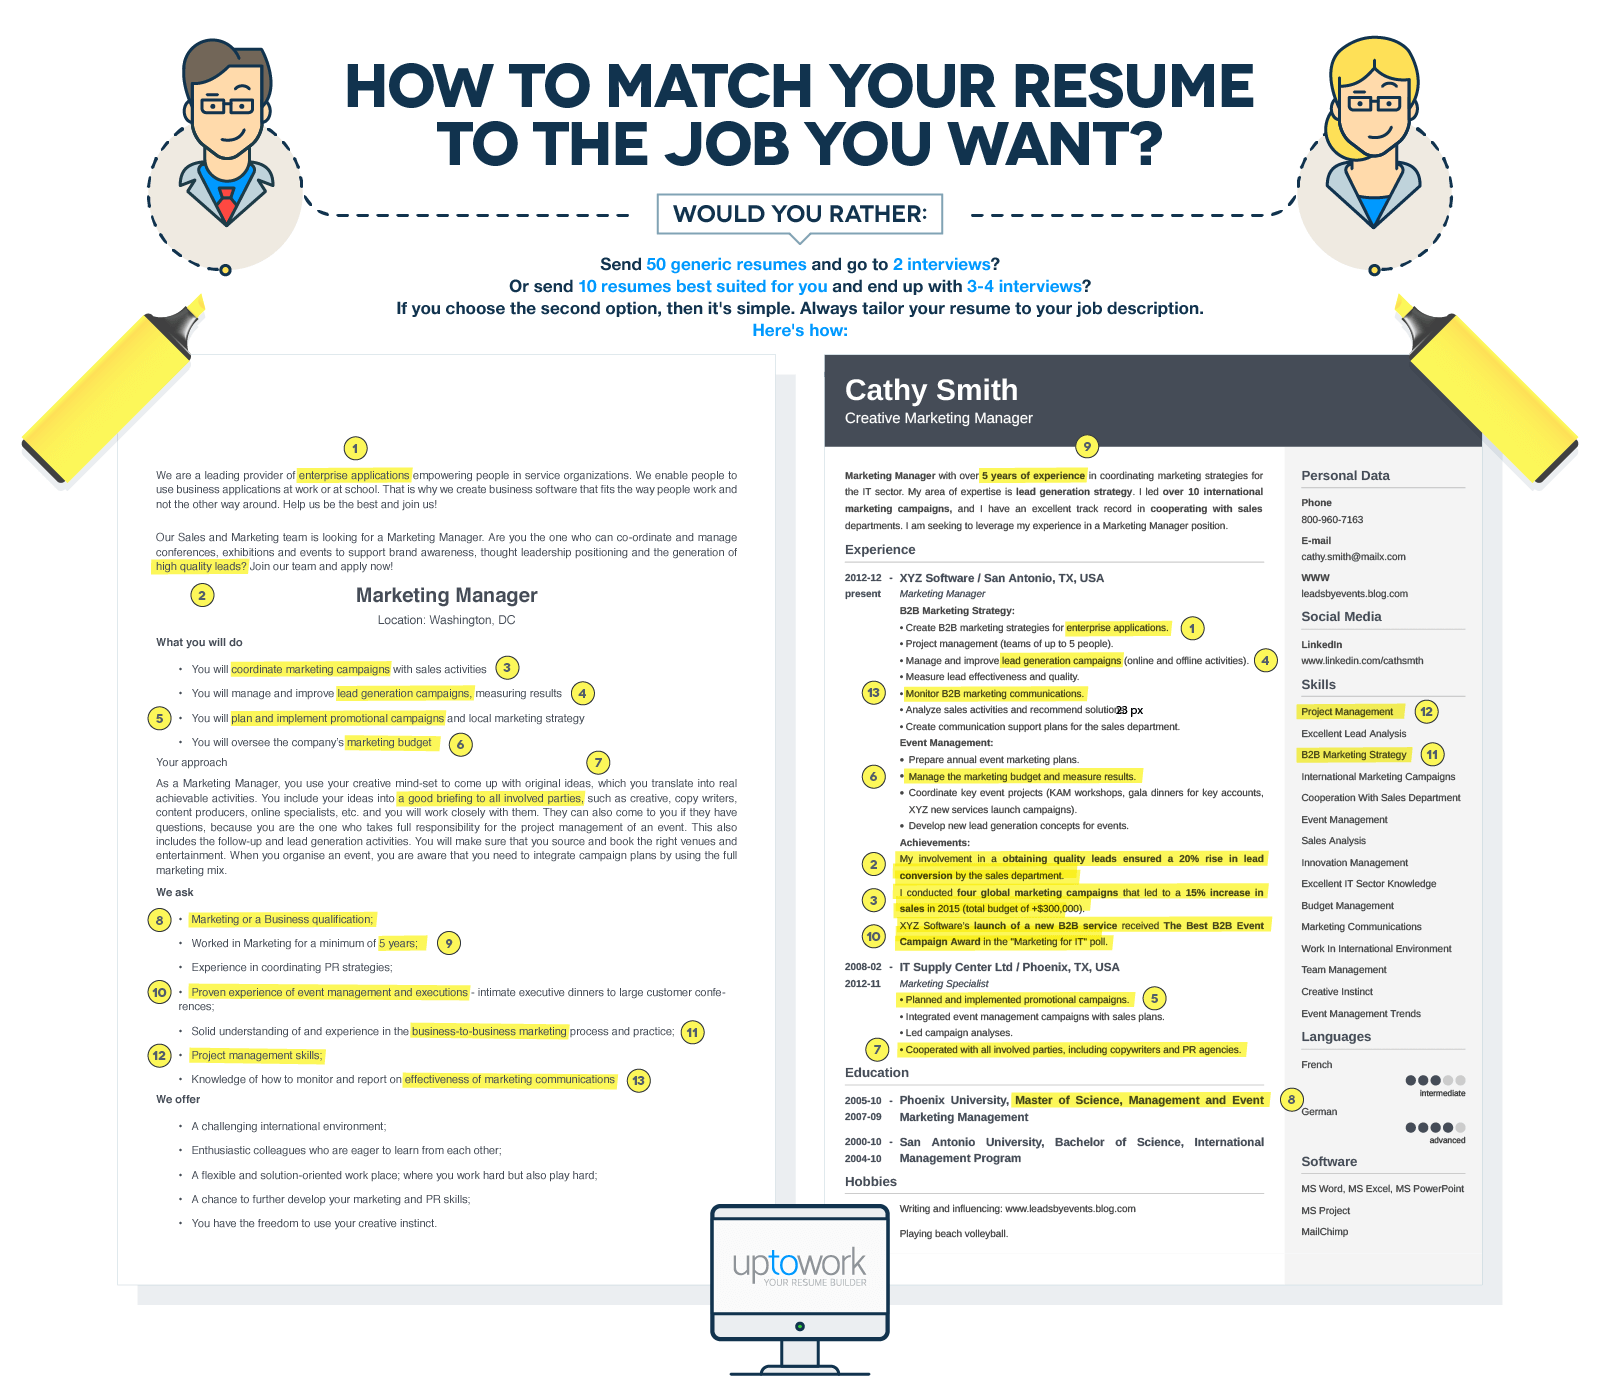 how to tailor your resume to the job description